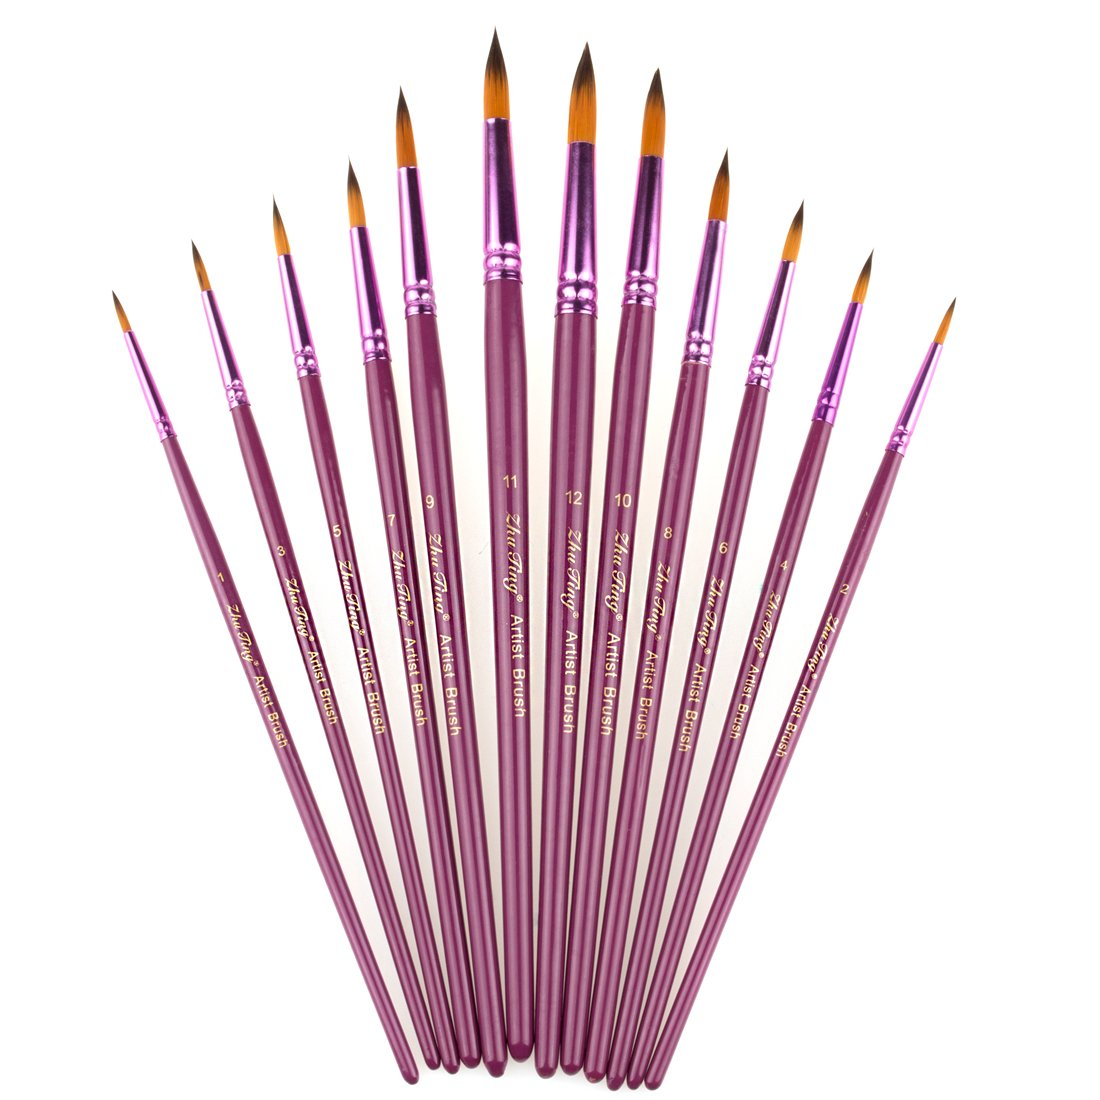 StarVast Painting Brushes, 12pcs Professional Round Pointed Paint Brush Set for Watercolor, Oil, Acrylic, Crafts, Rock, Face Painting and Gouache - Purple